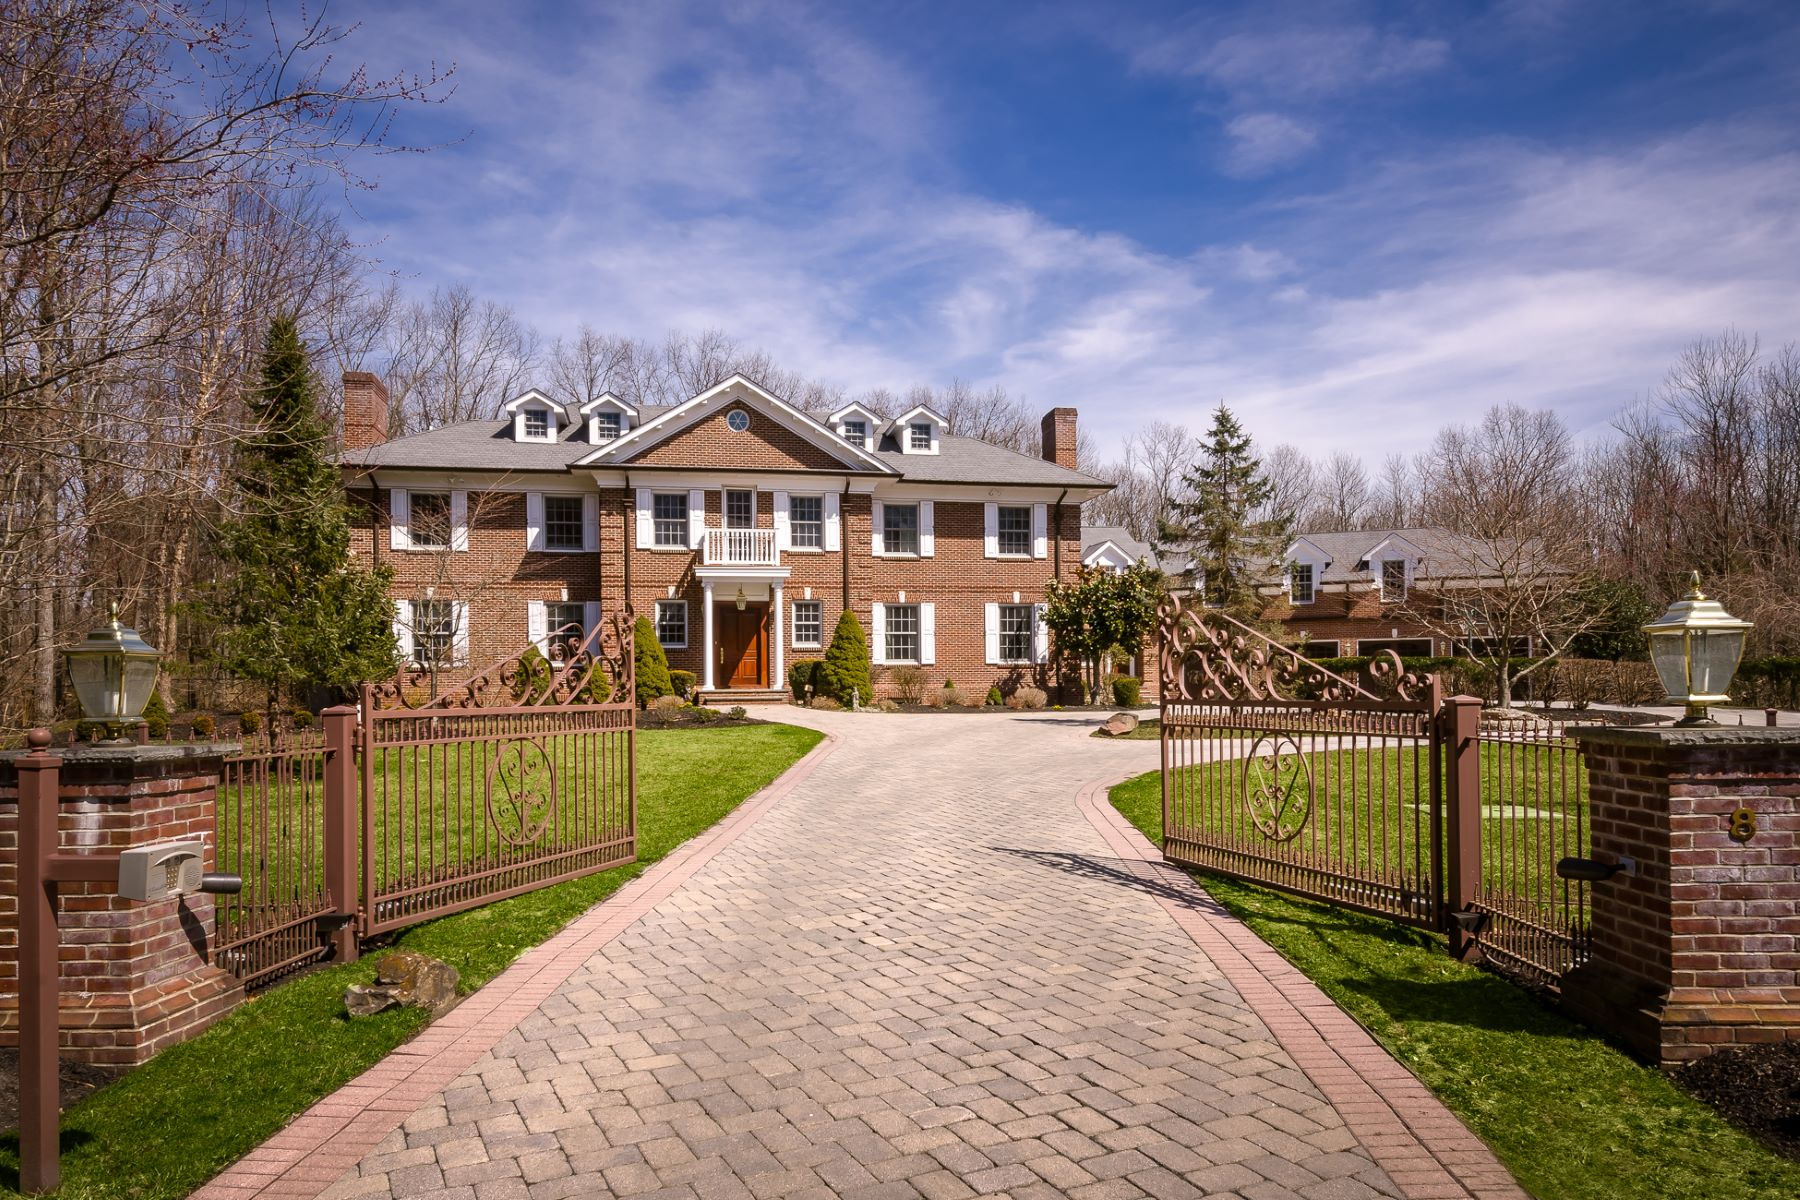 Single Family Homes für Verkauf beim Stonybrook Manor: Once-in-a-Lifetime Magnificence 8 Players Lane, Princeton, New Jersey 08540 Vereinigte Staaten